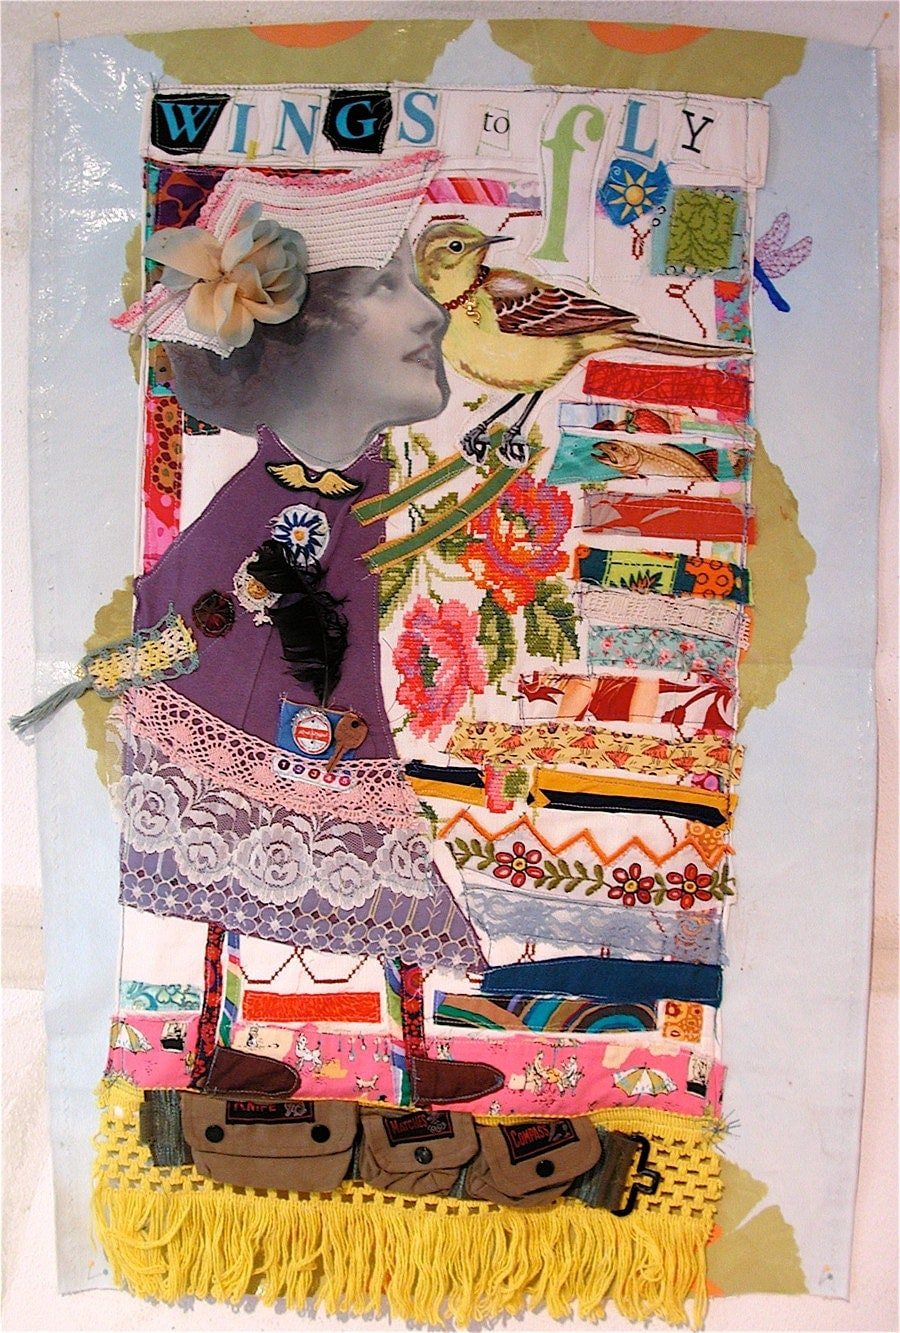 Wings To Fly Fabric Collage Art Quilt Large Assemblage By